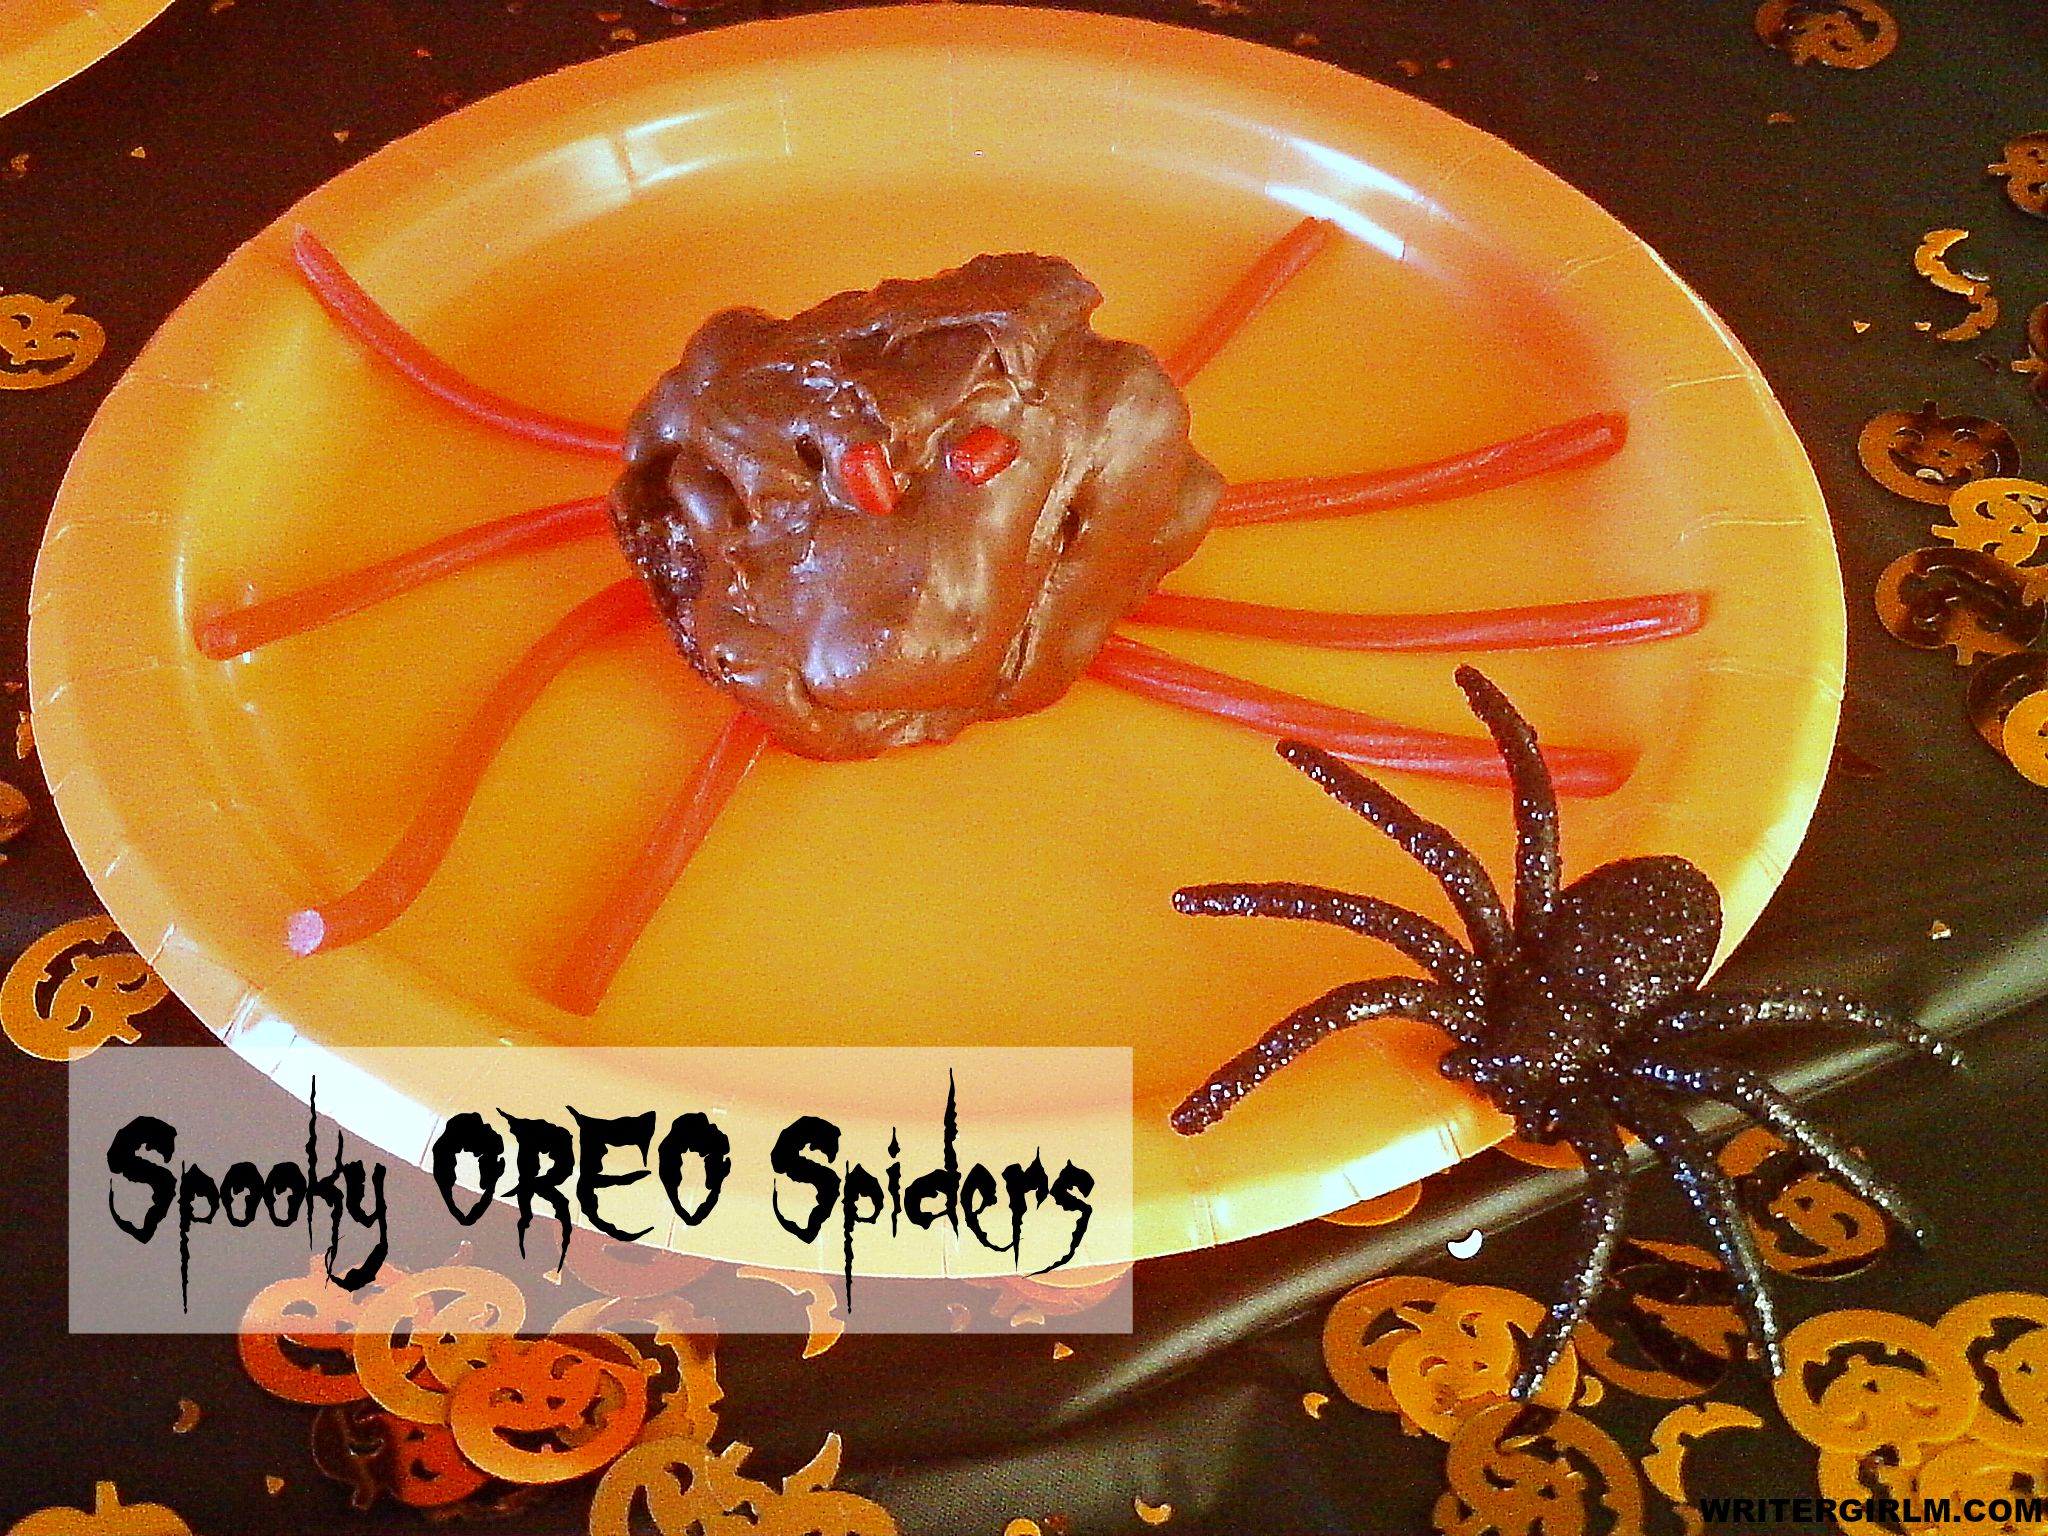 Spooky OREO Spiders are easy to make and fun to eat! #SpookySnacks #CollectiveBias